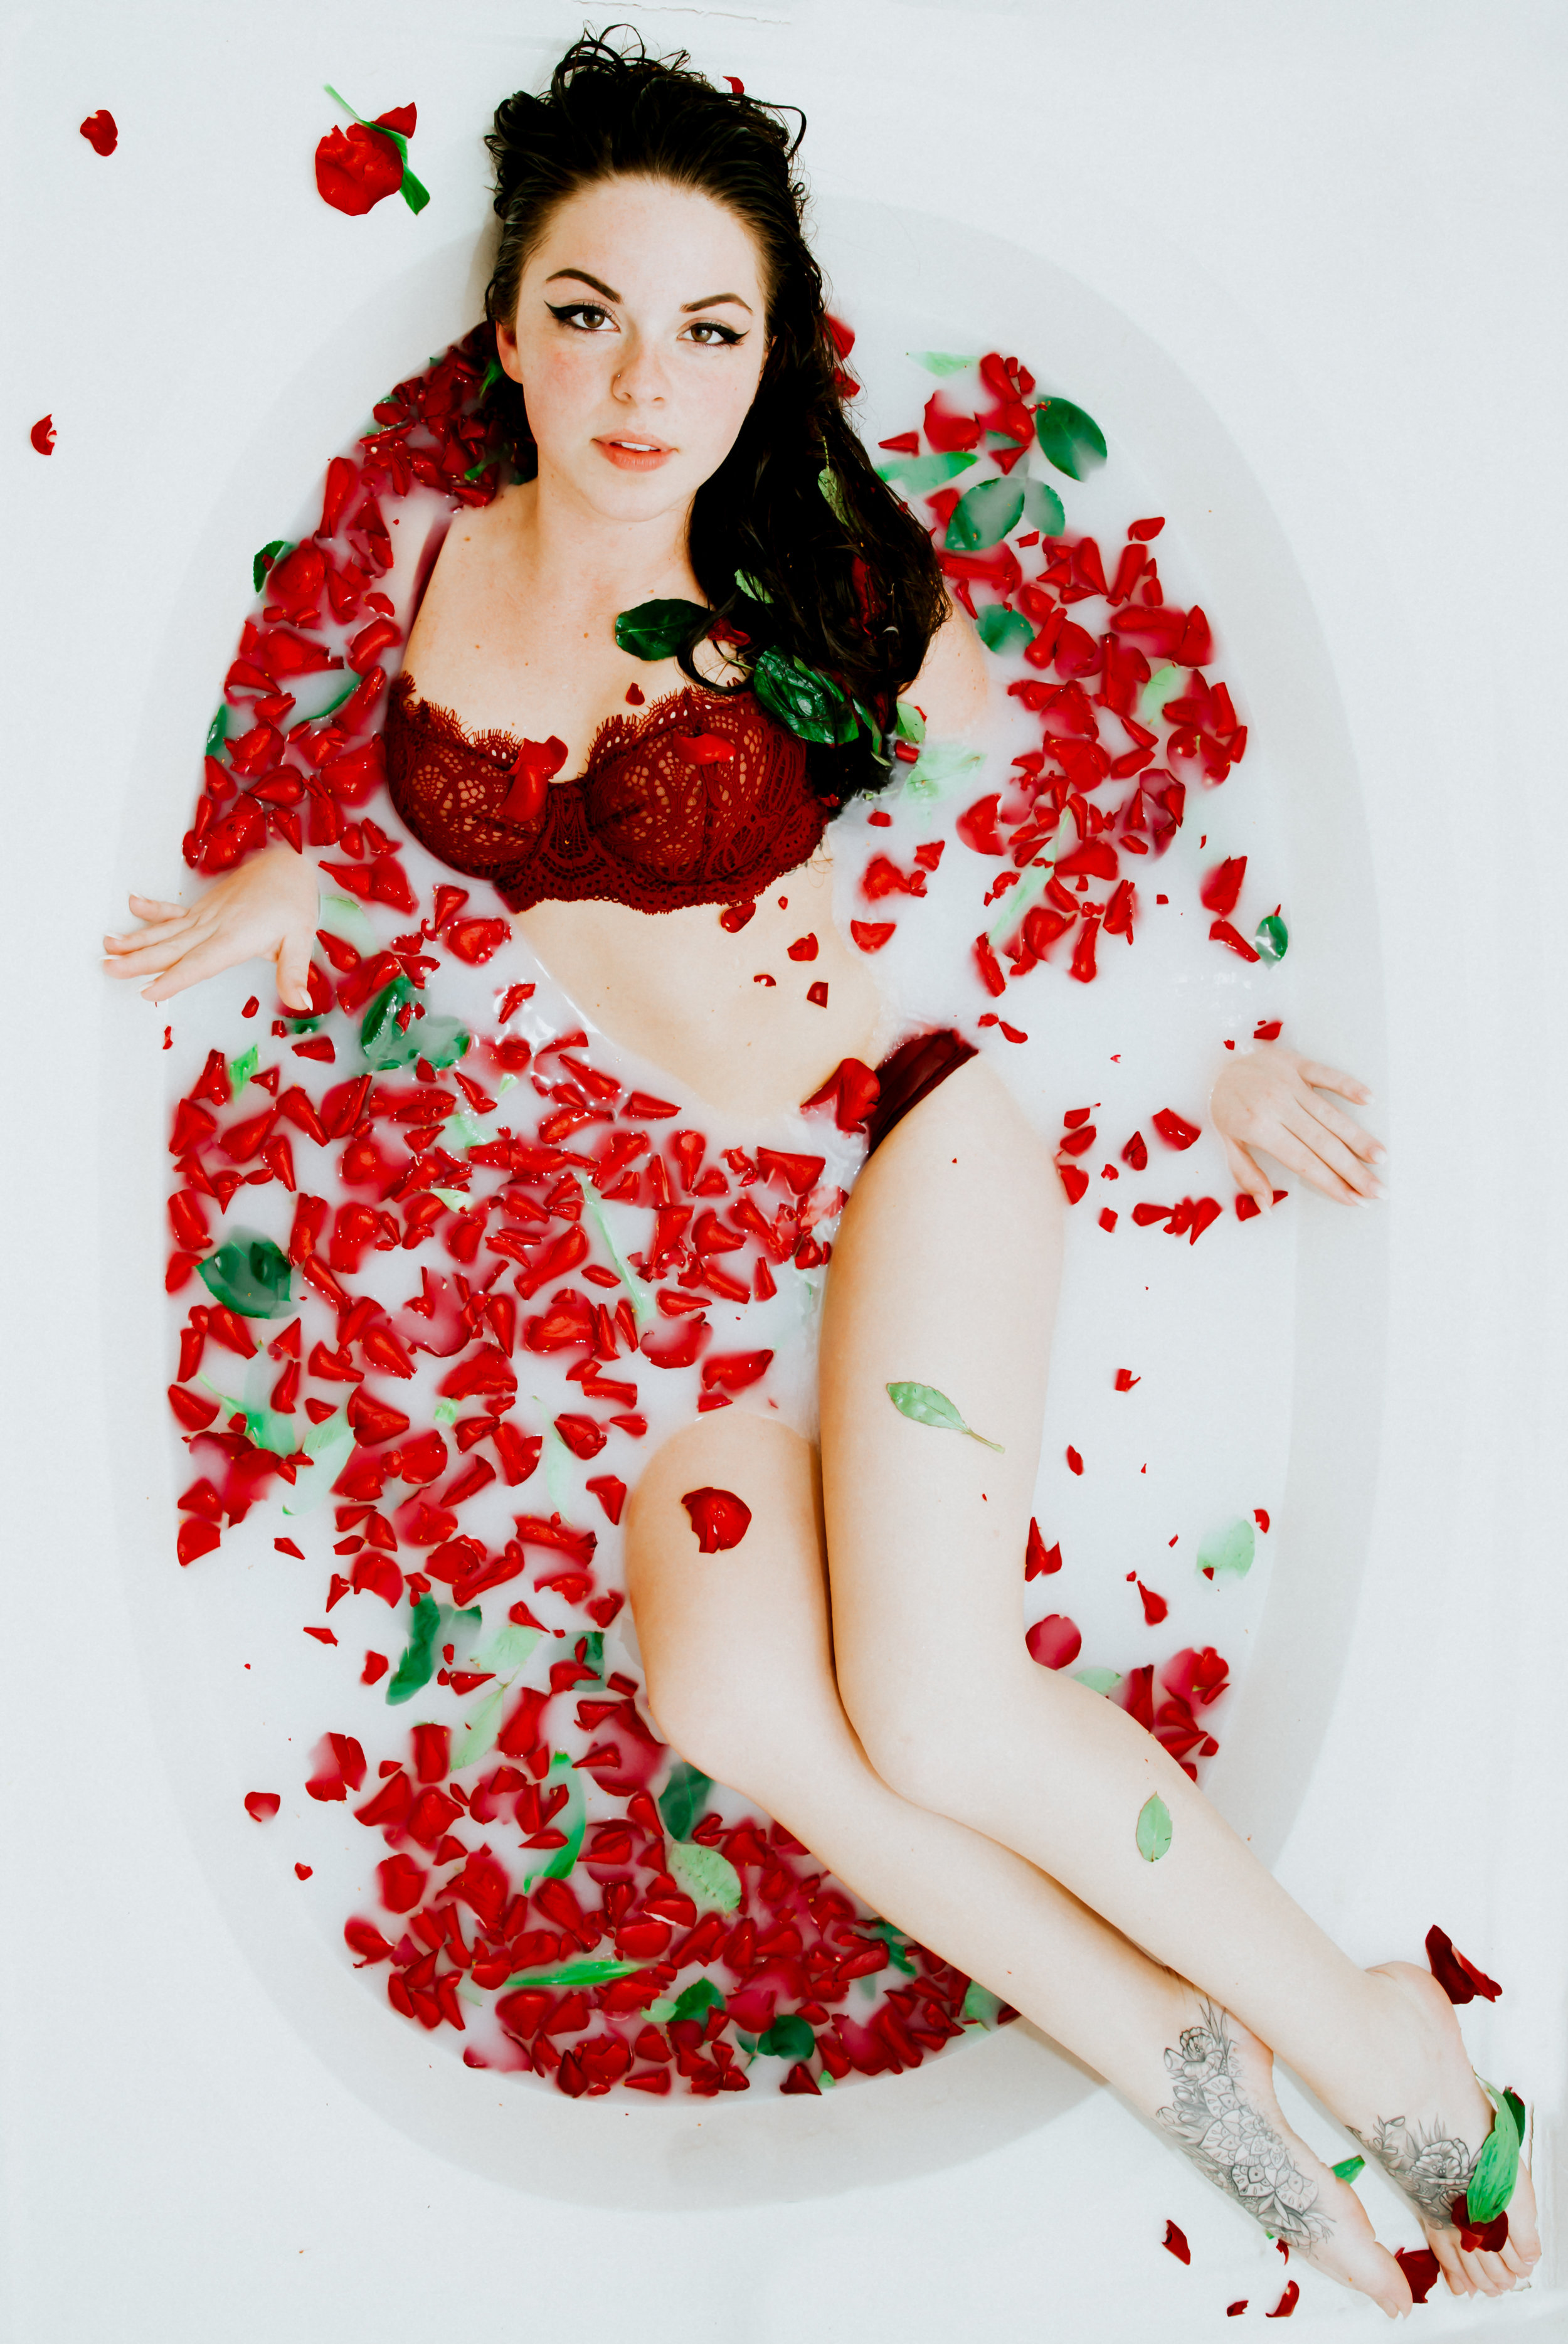 Melissa in a Full Rose Petal Bath